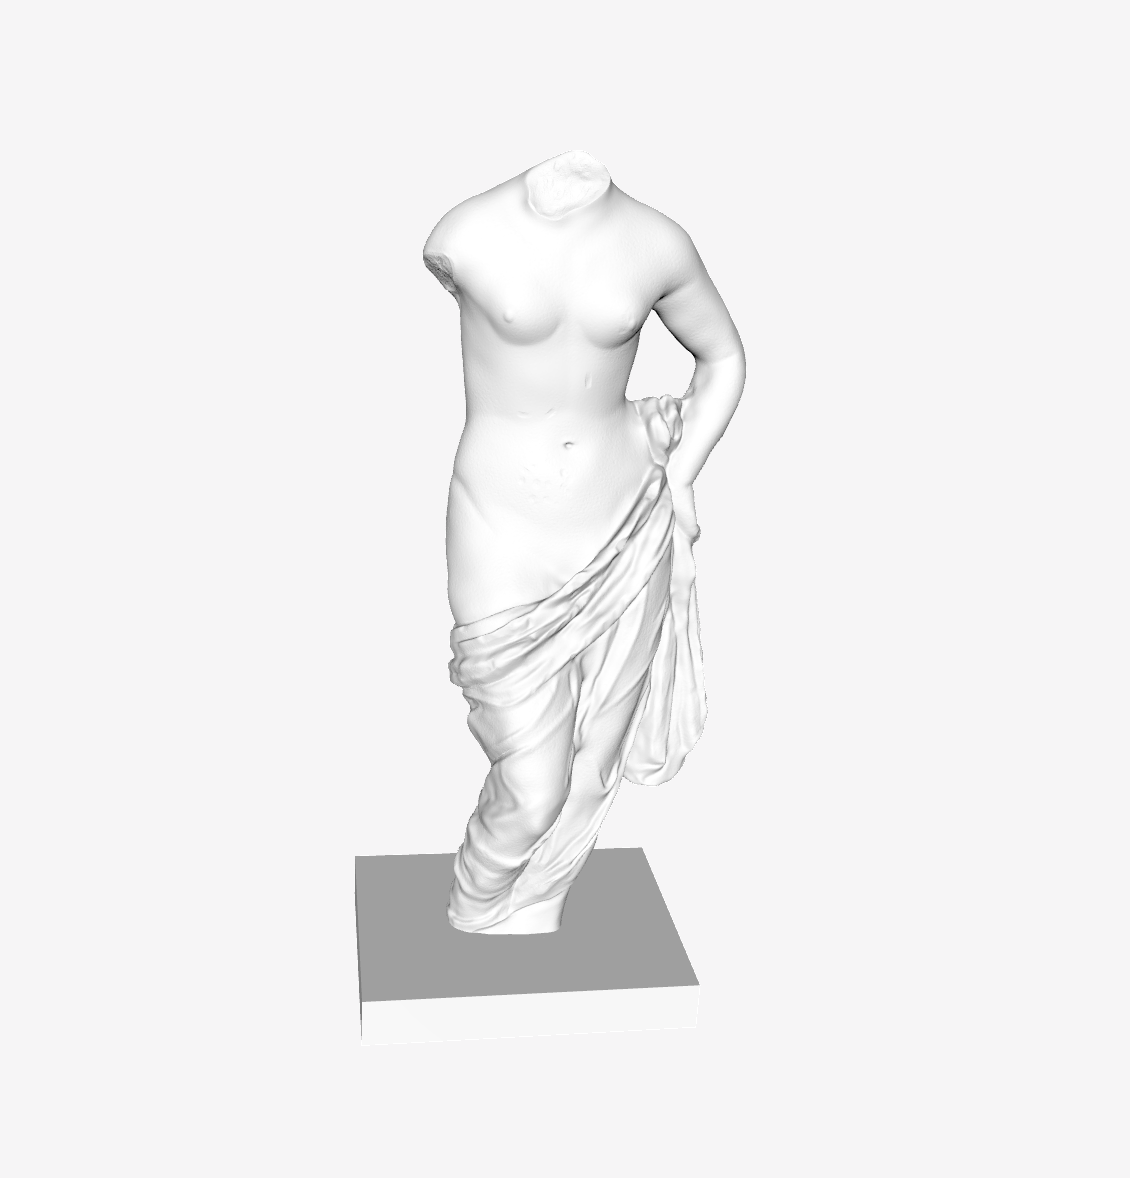 Capture d'écran 2018-09-21 à 10.32.16.png Download free STL file Aphrodite holding her Drapery at The Louvre, Paris • 3D printable template, Louvre